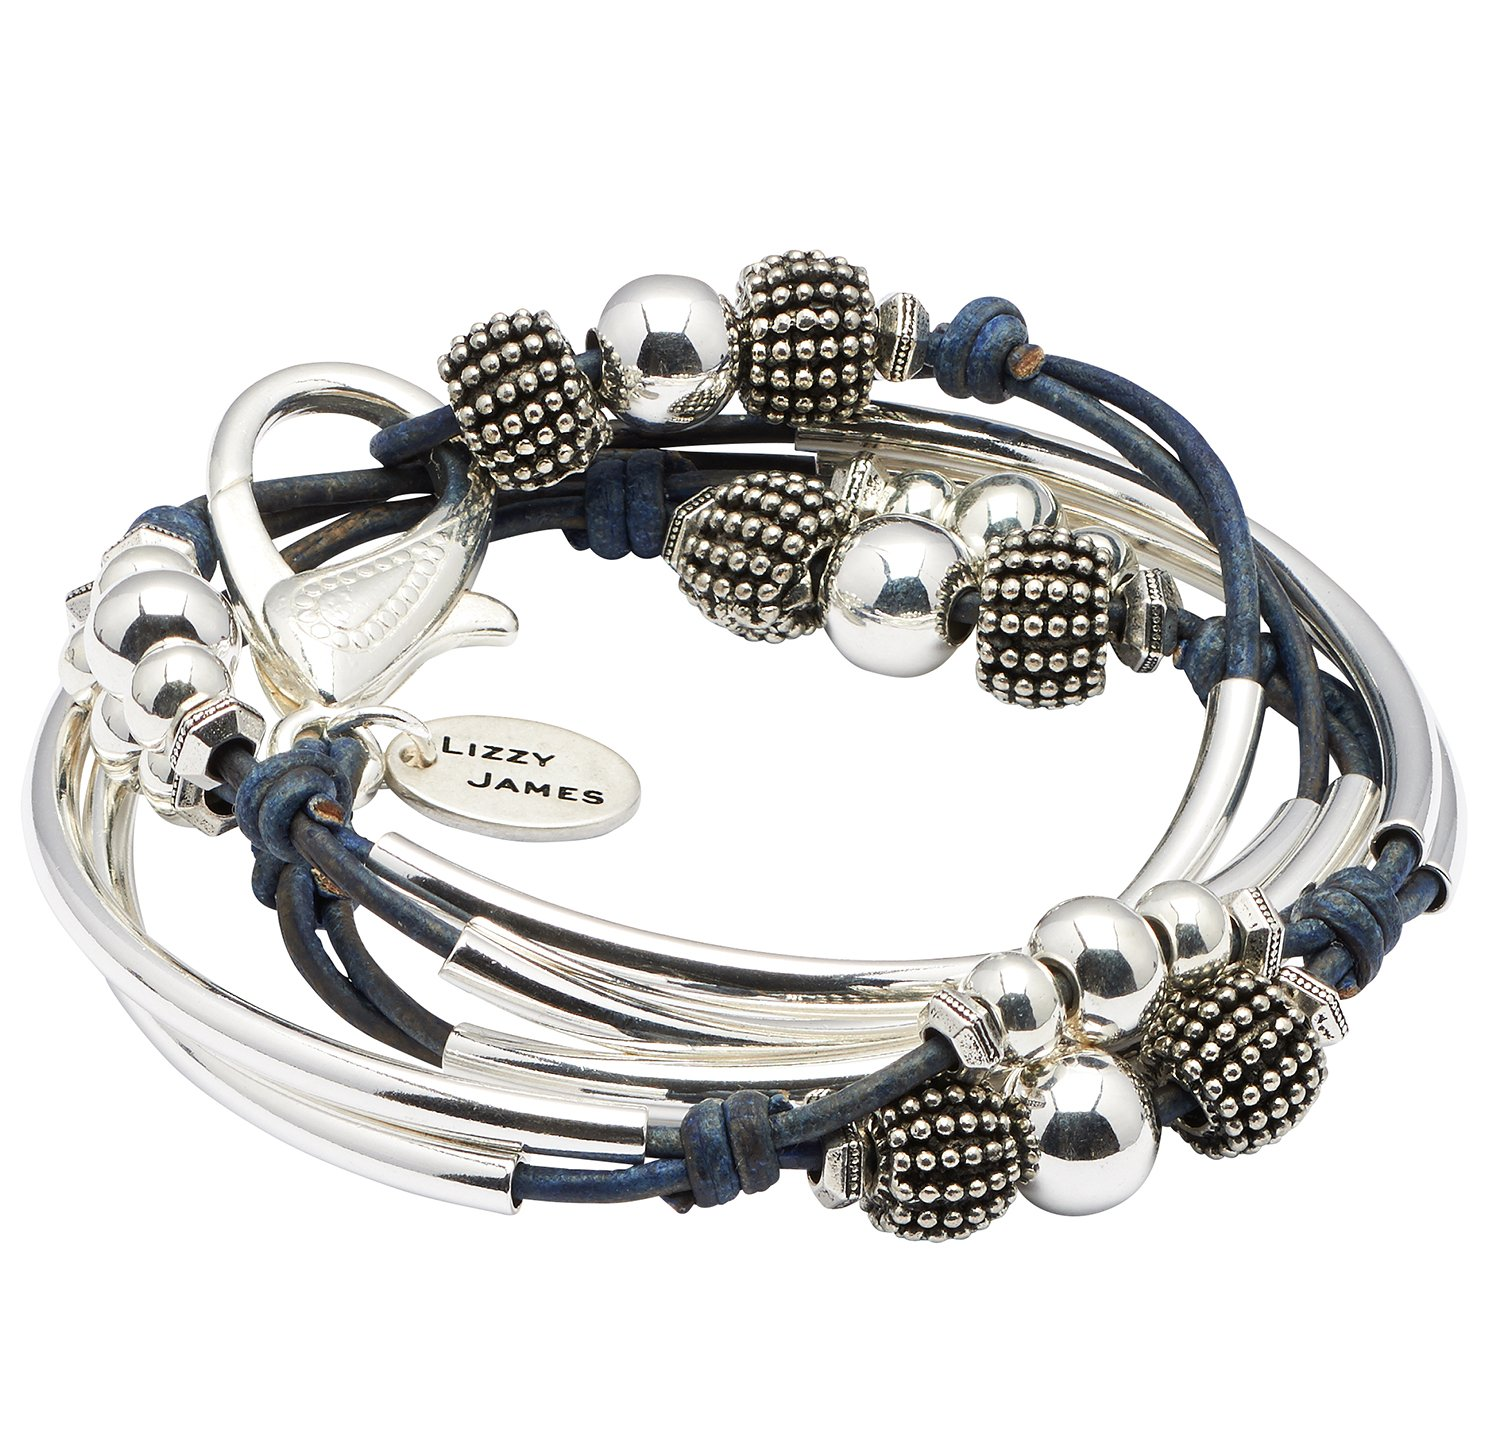 London Silverplated 2 Strand Natural True Blue Leather Wrap Bracelet (Large (6 5/8'' - 7''))